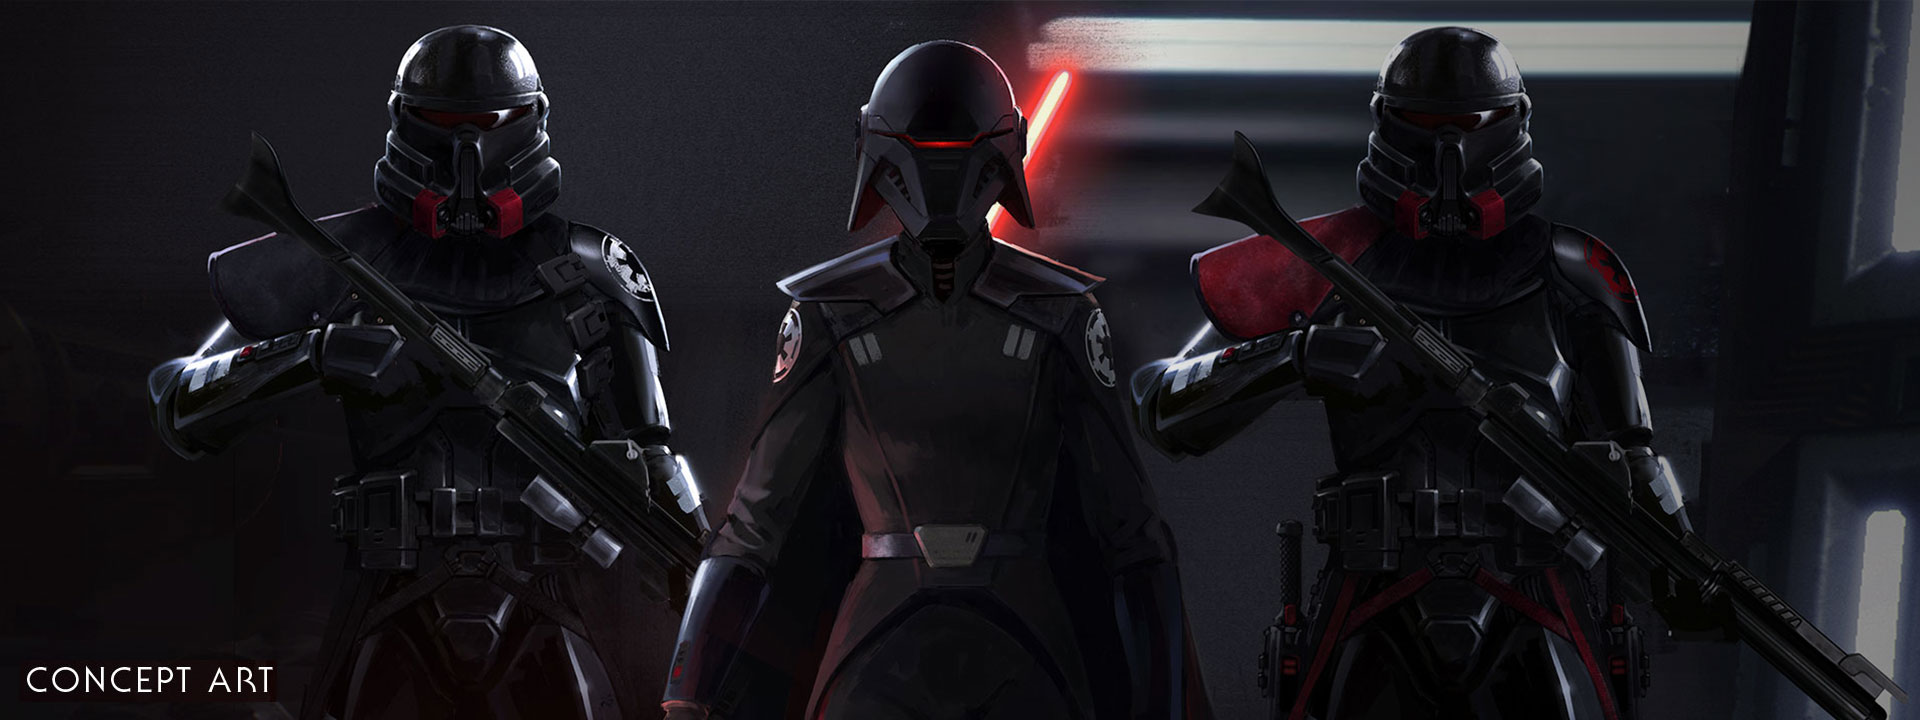 Concept art, front view of Empire leader and two soldiers